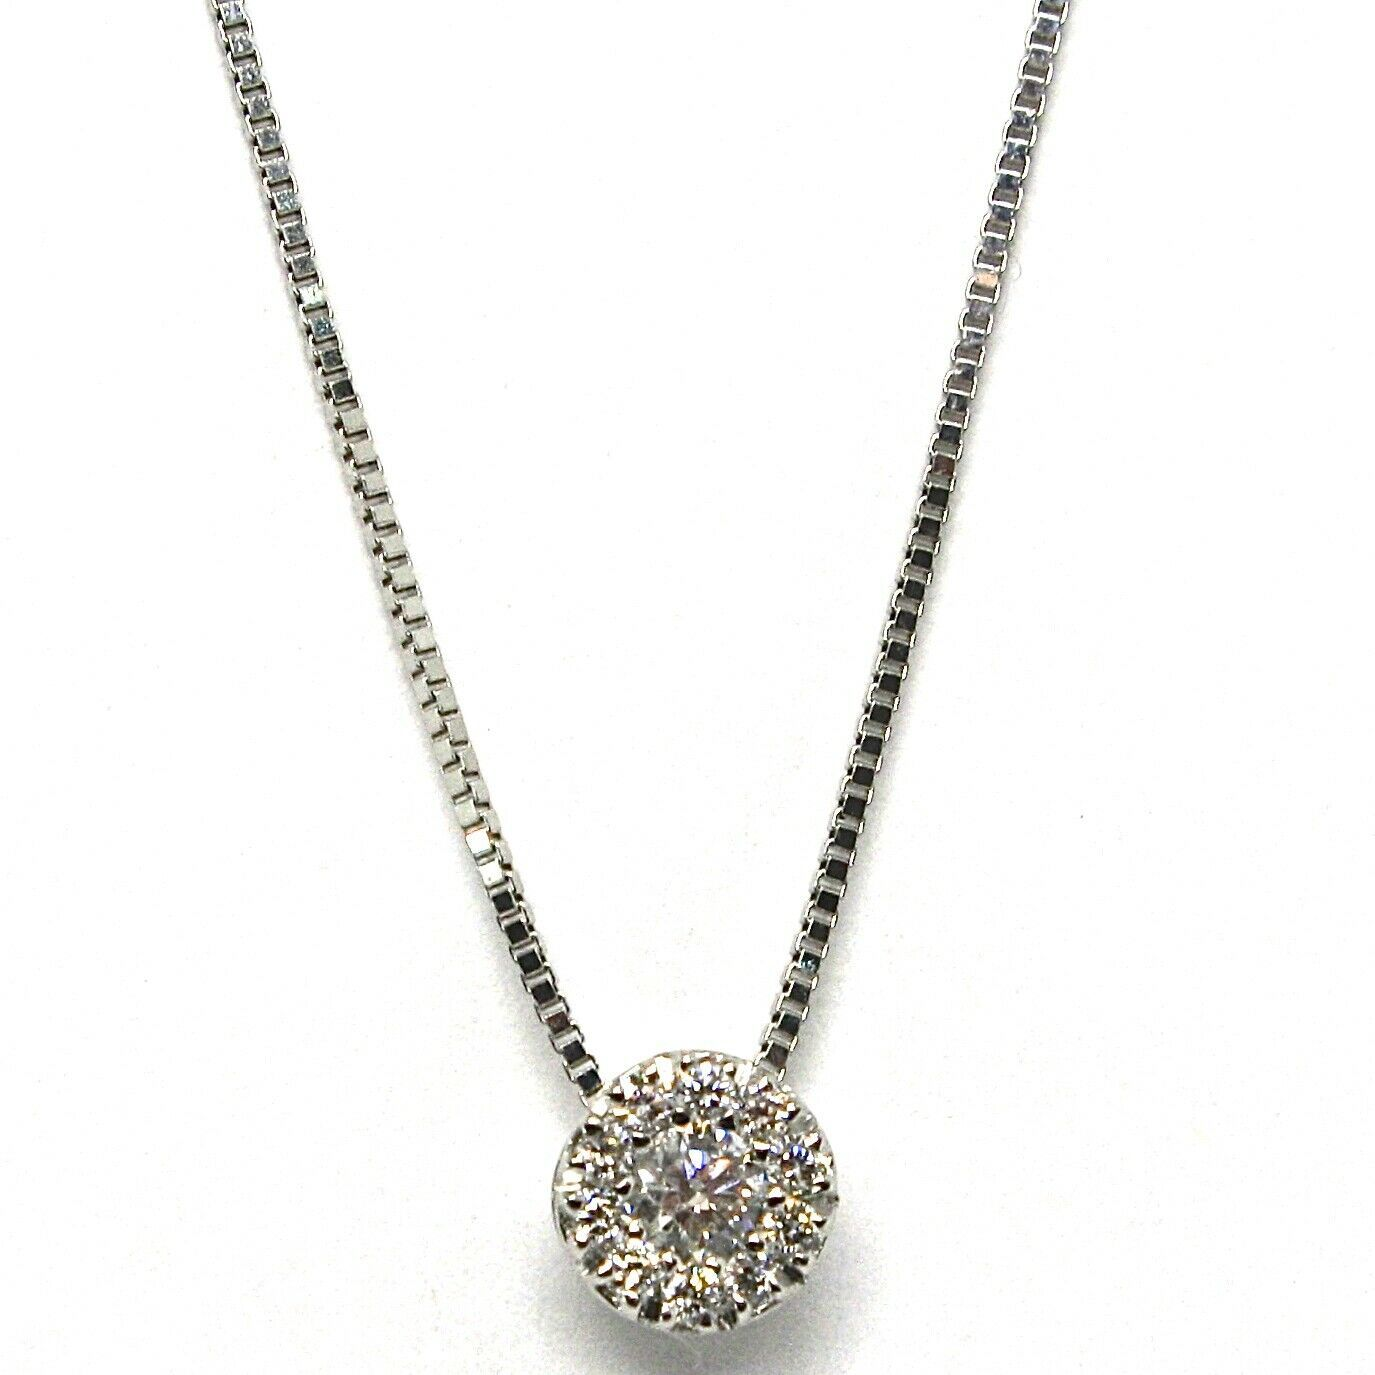 Necklace with White Gold Pendant 750 18K, Central and Frame, Diamonds, Flower